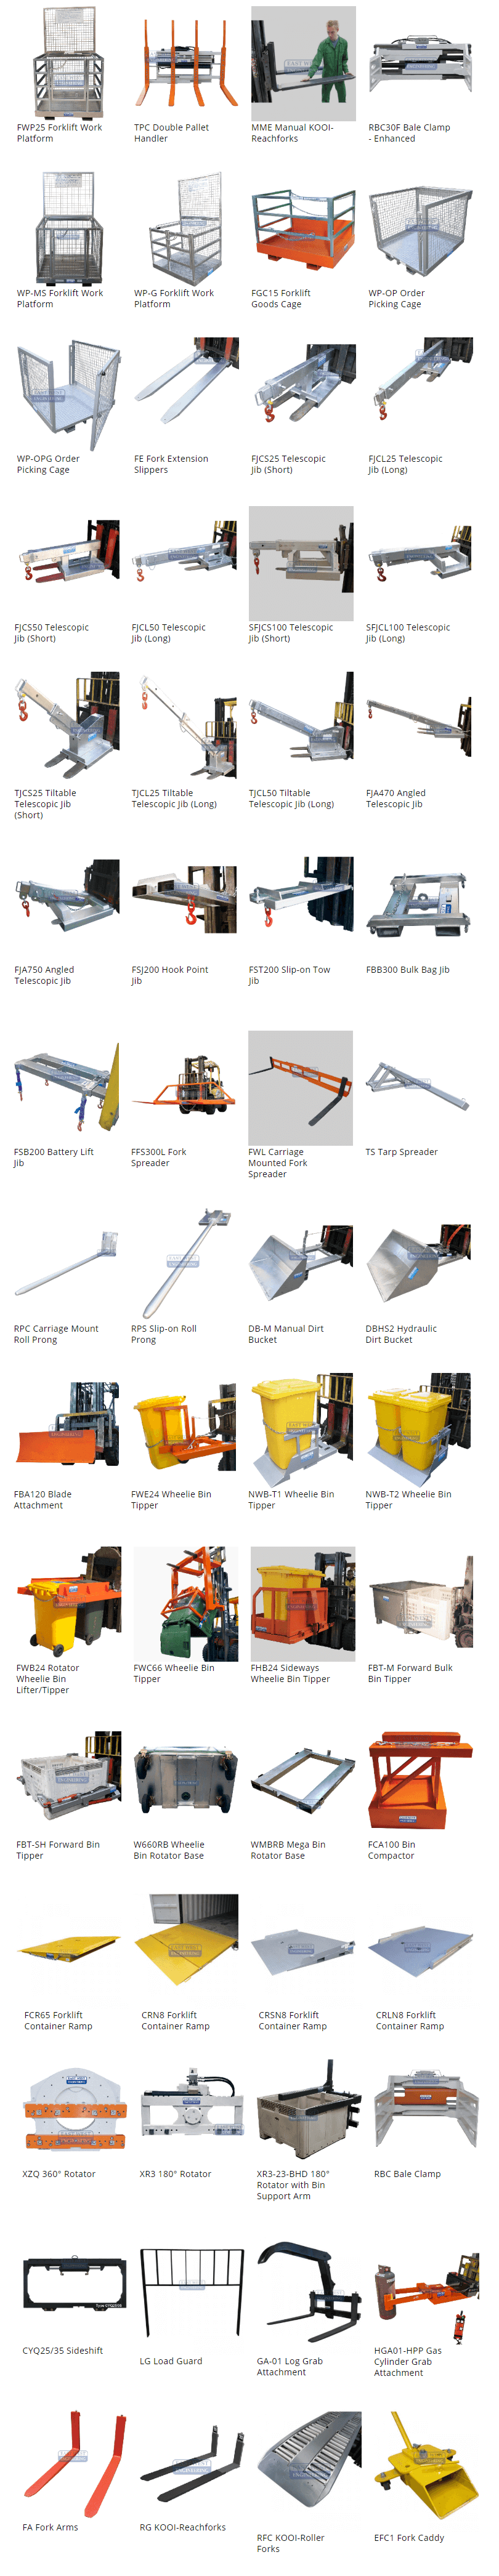 forklift attachments darwin